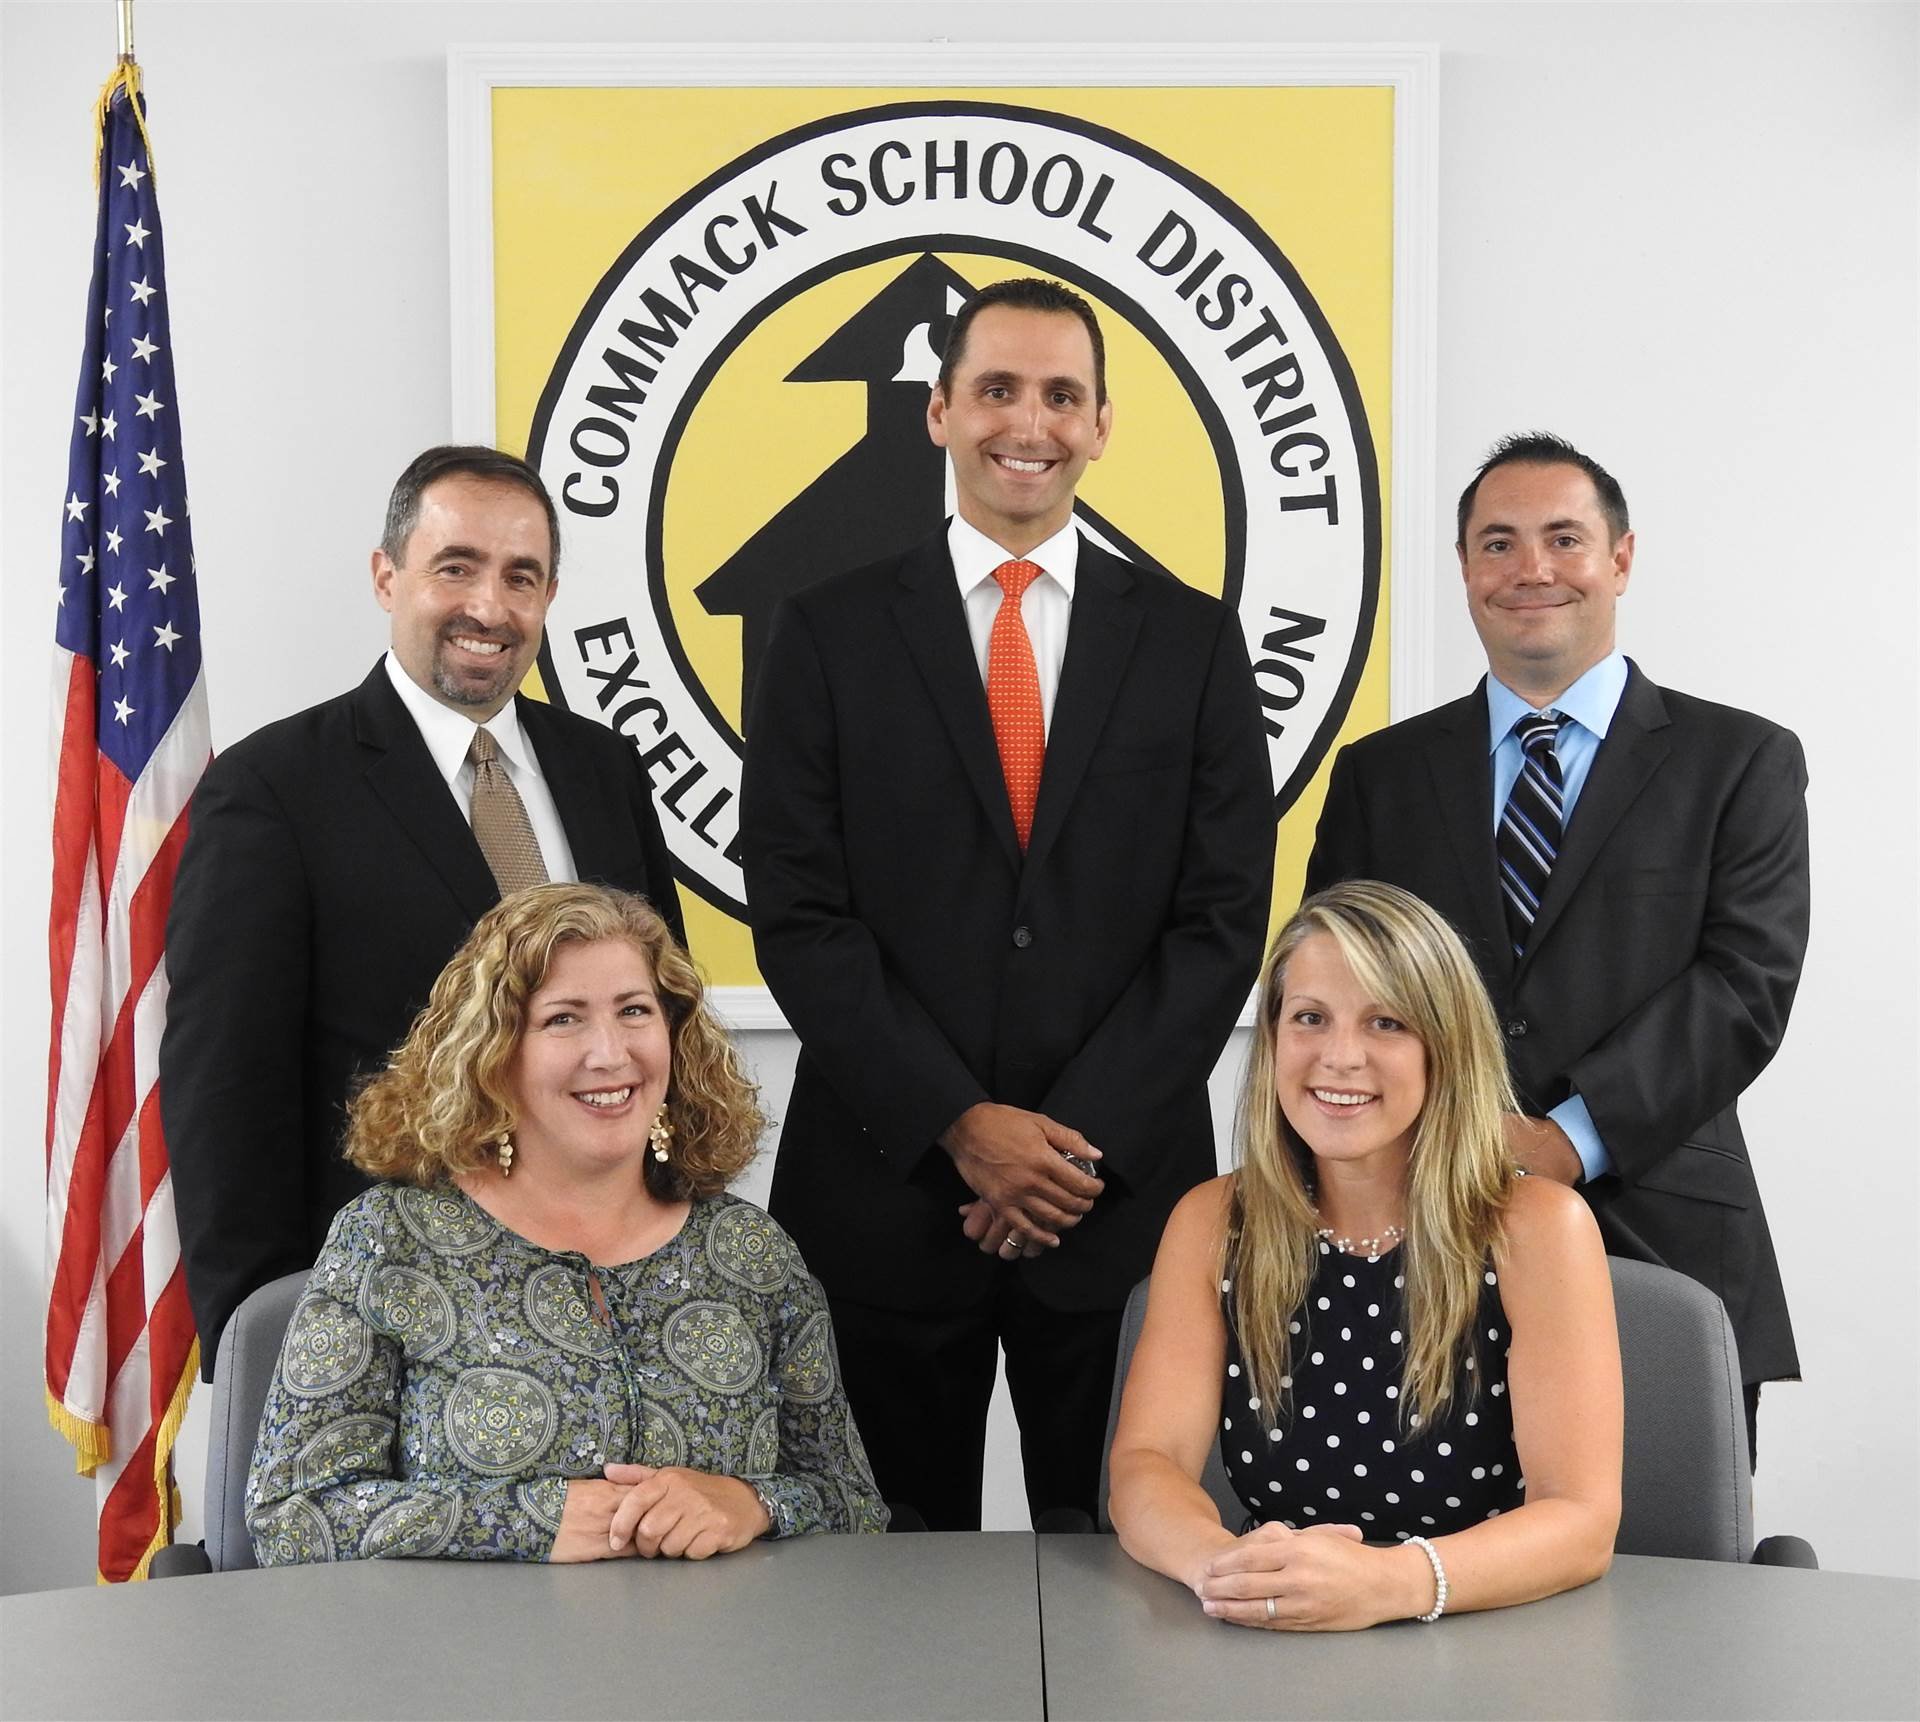 The Commack Board of Education